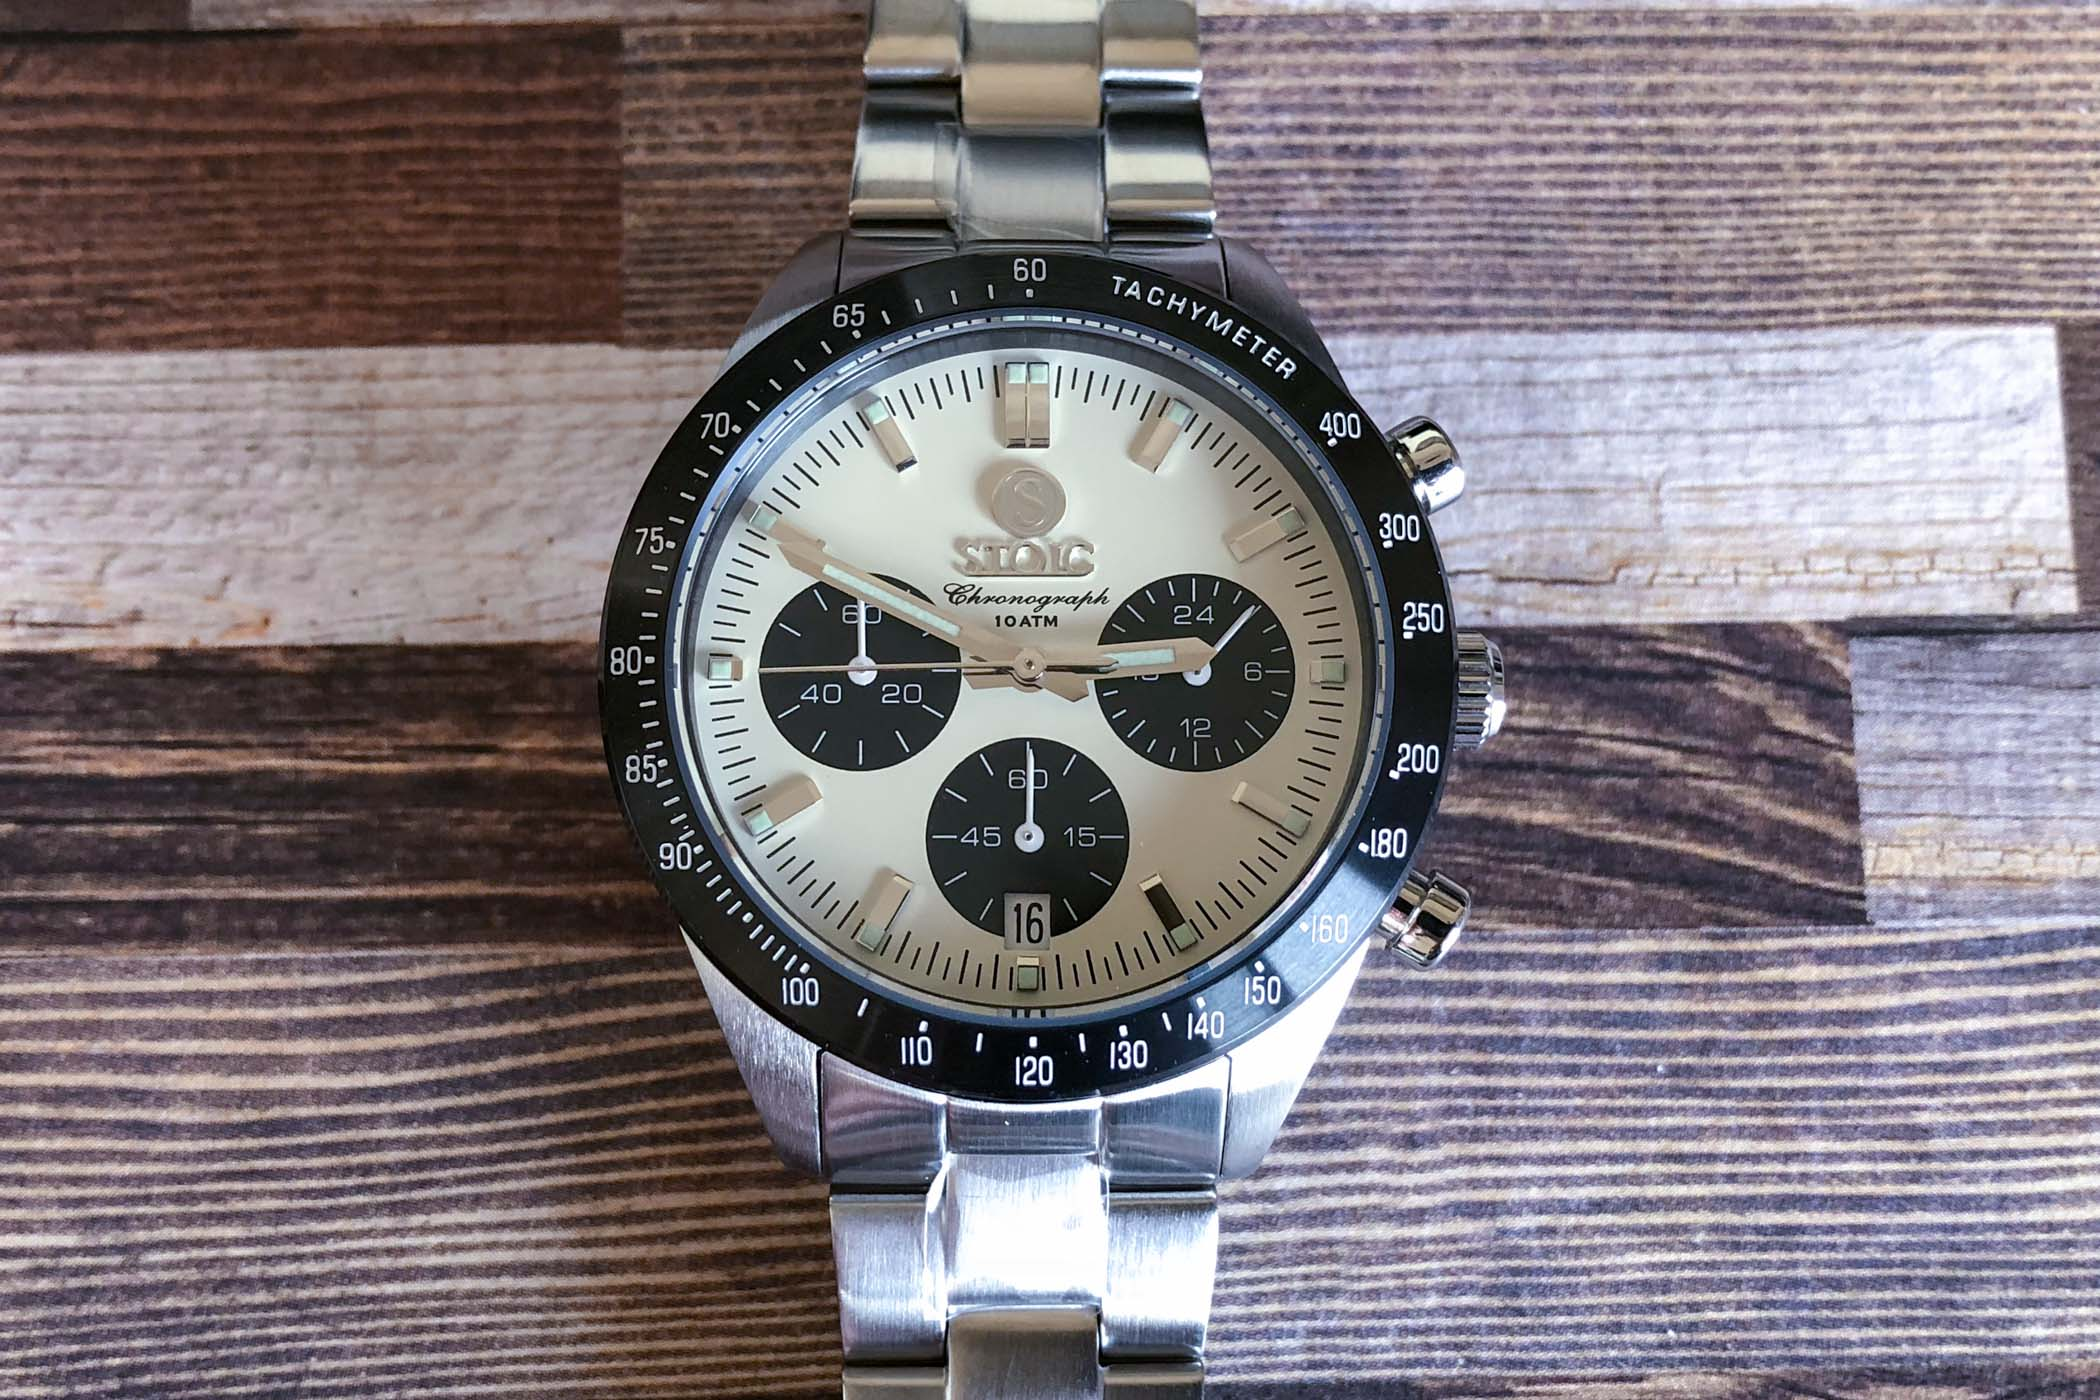 Stoic World chronograph Peter Speake Marin review - 4